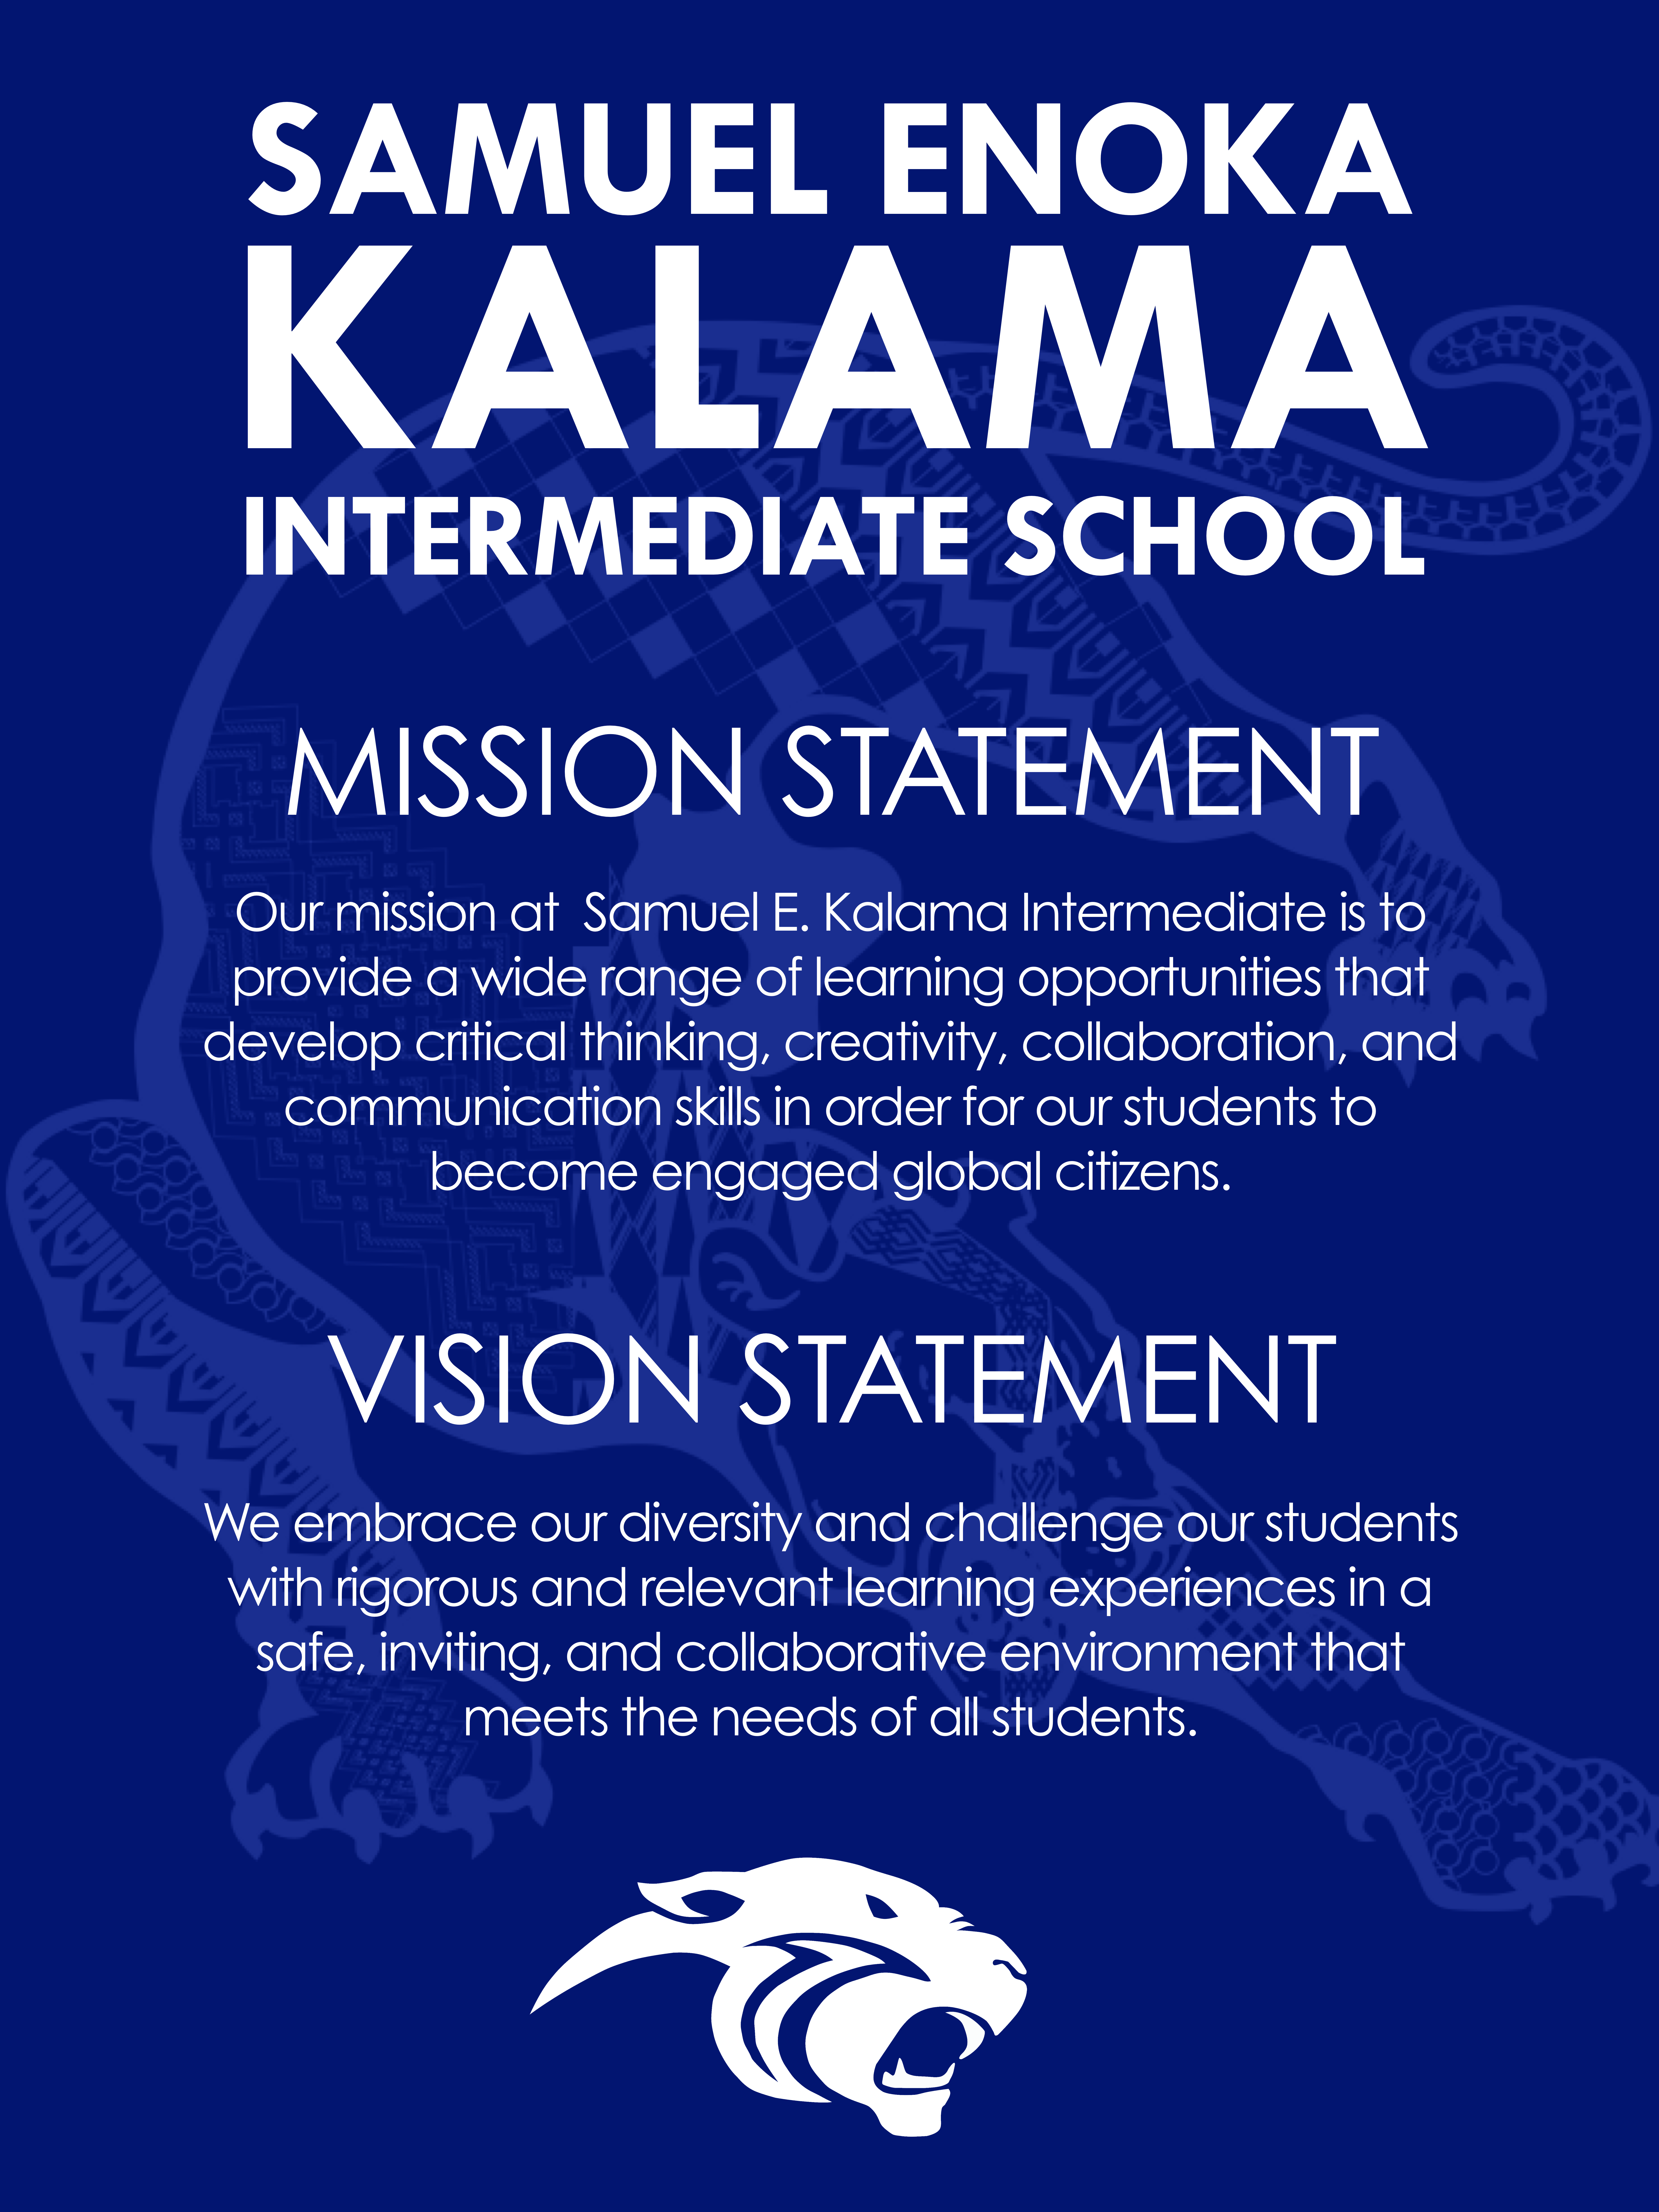 mission statement and vision statement